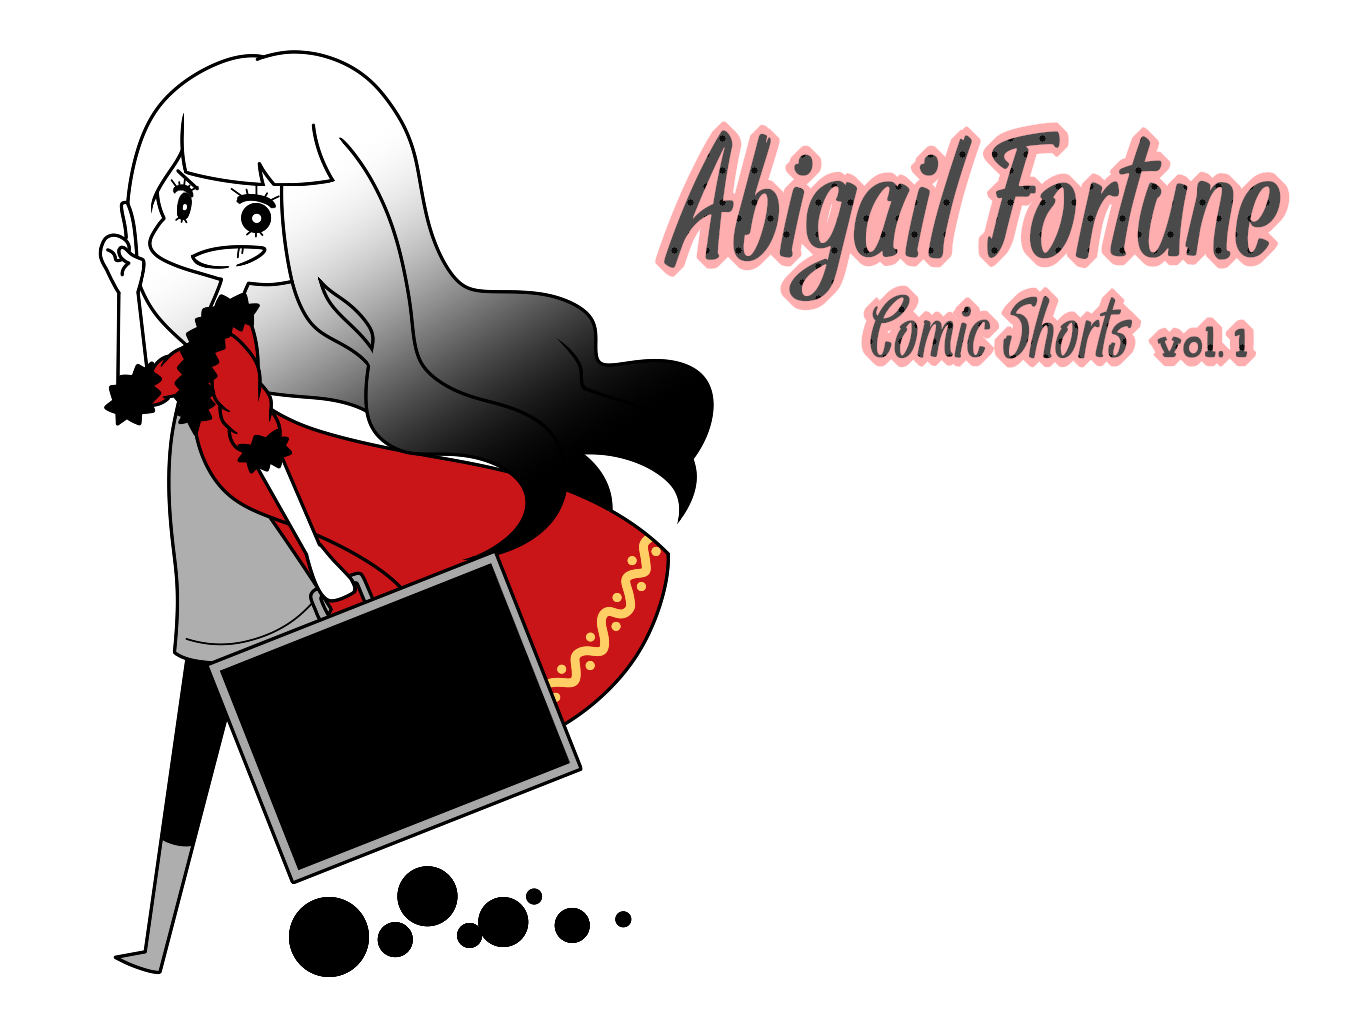 Abigail Fortune Comic Shorts vol. 1